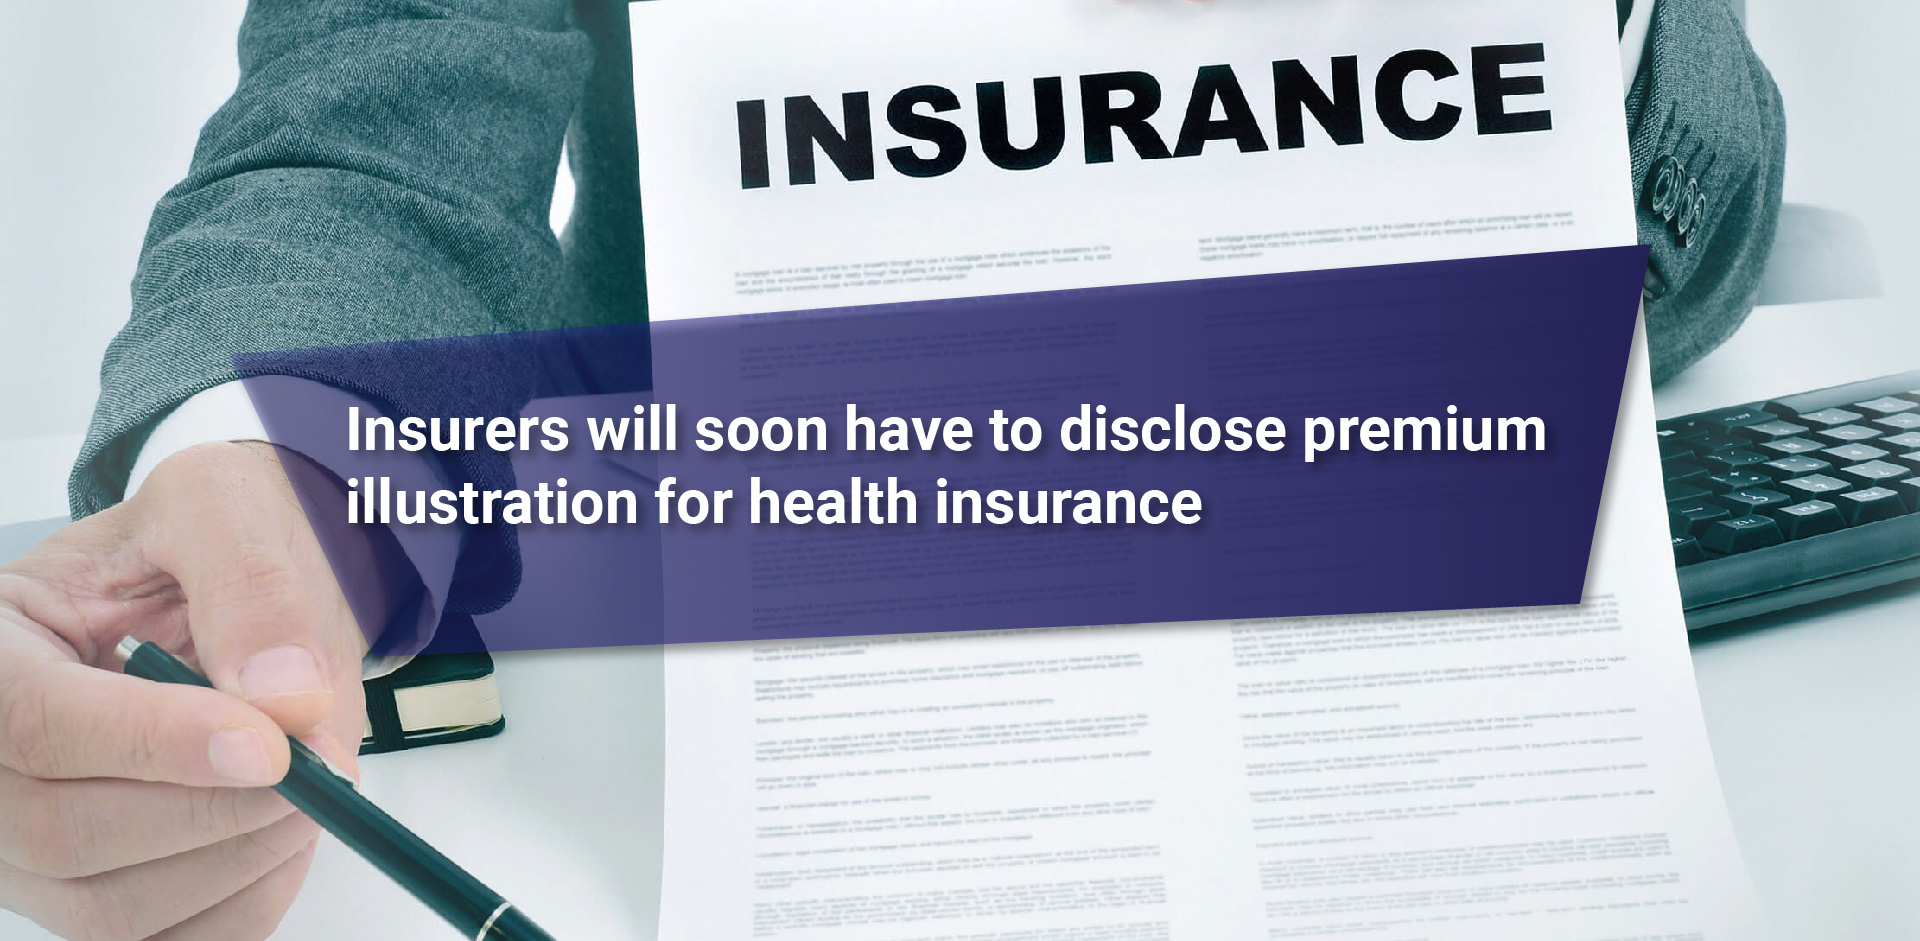 Insurers will soon have to disclose premium illustration for health insurance